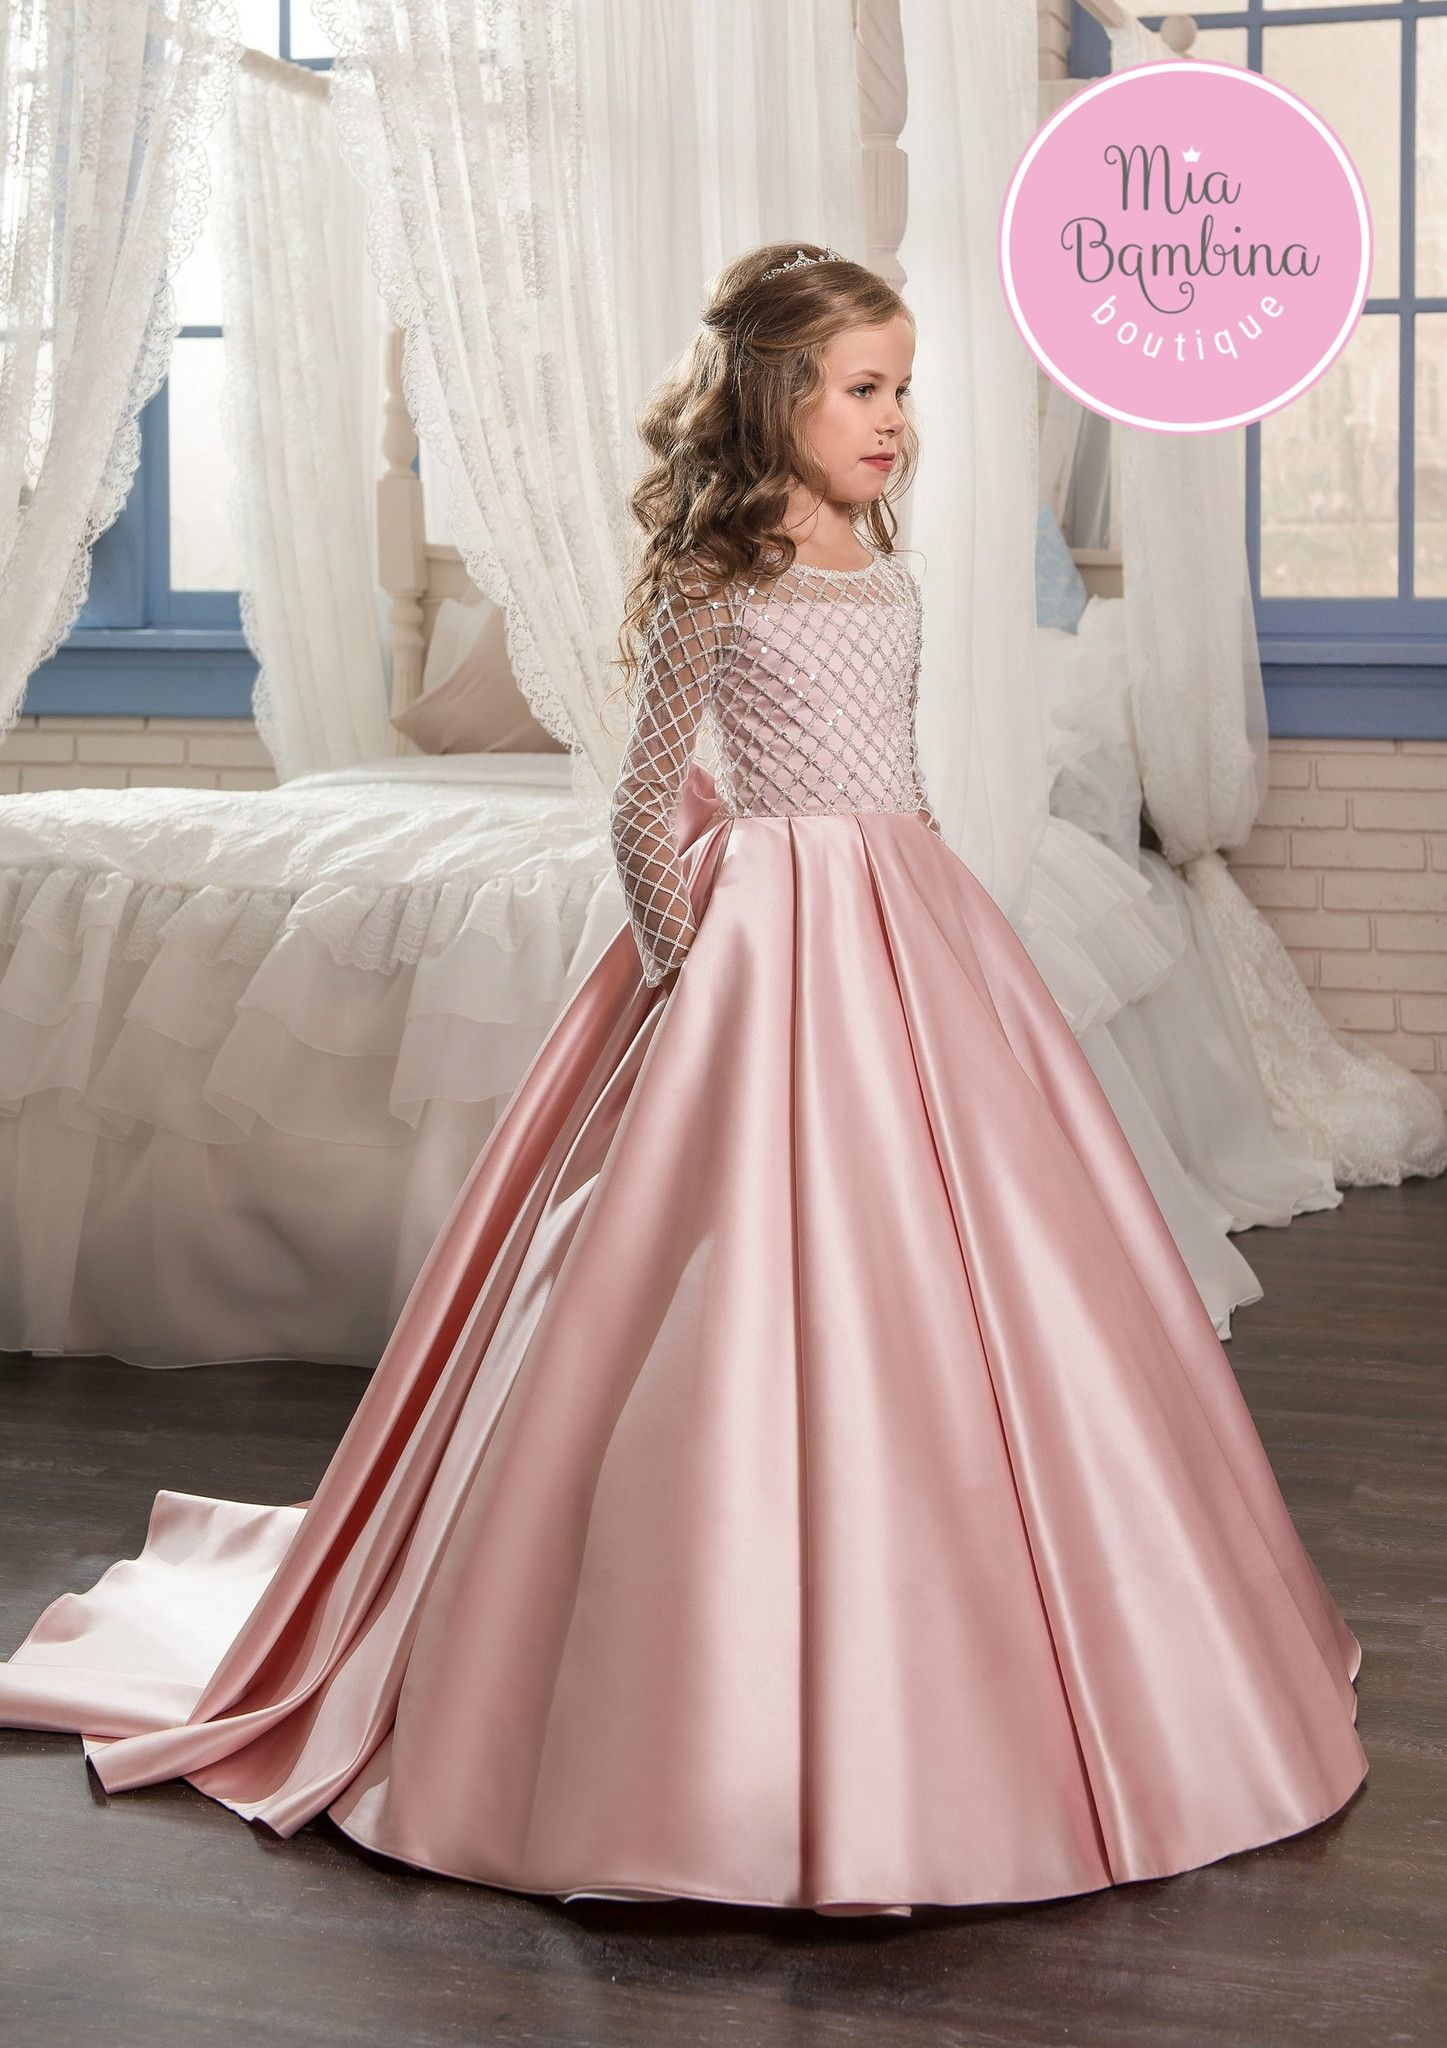 c3d047fc7 Flower Girl Dresses Shop Toronto Flower Girl Dresses at Girls Dress ...